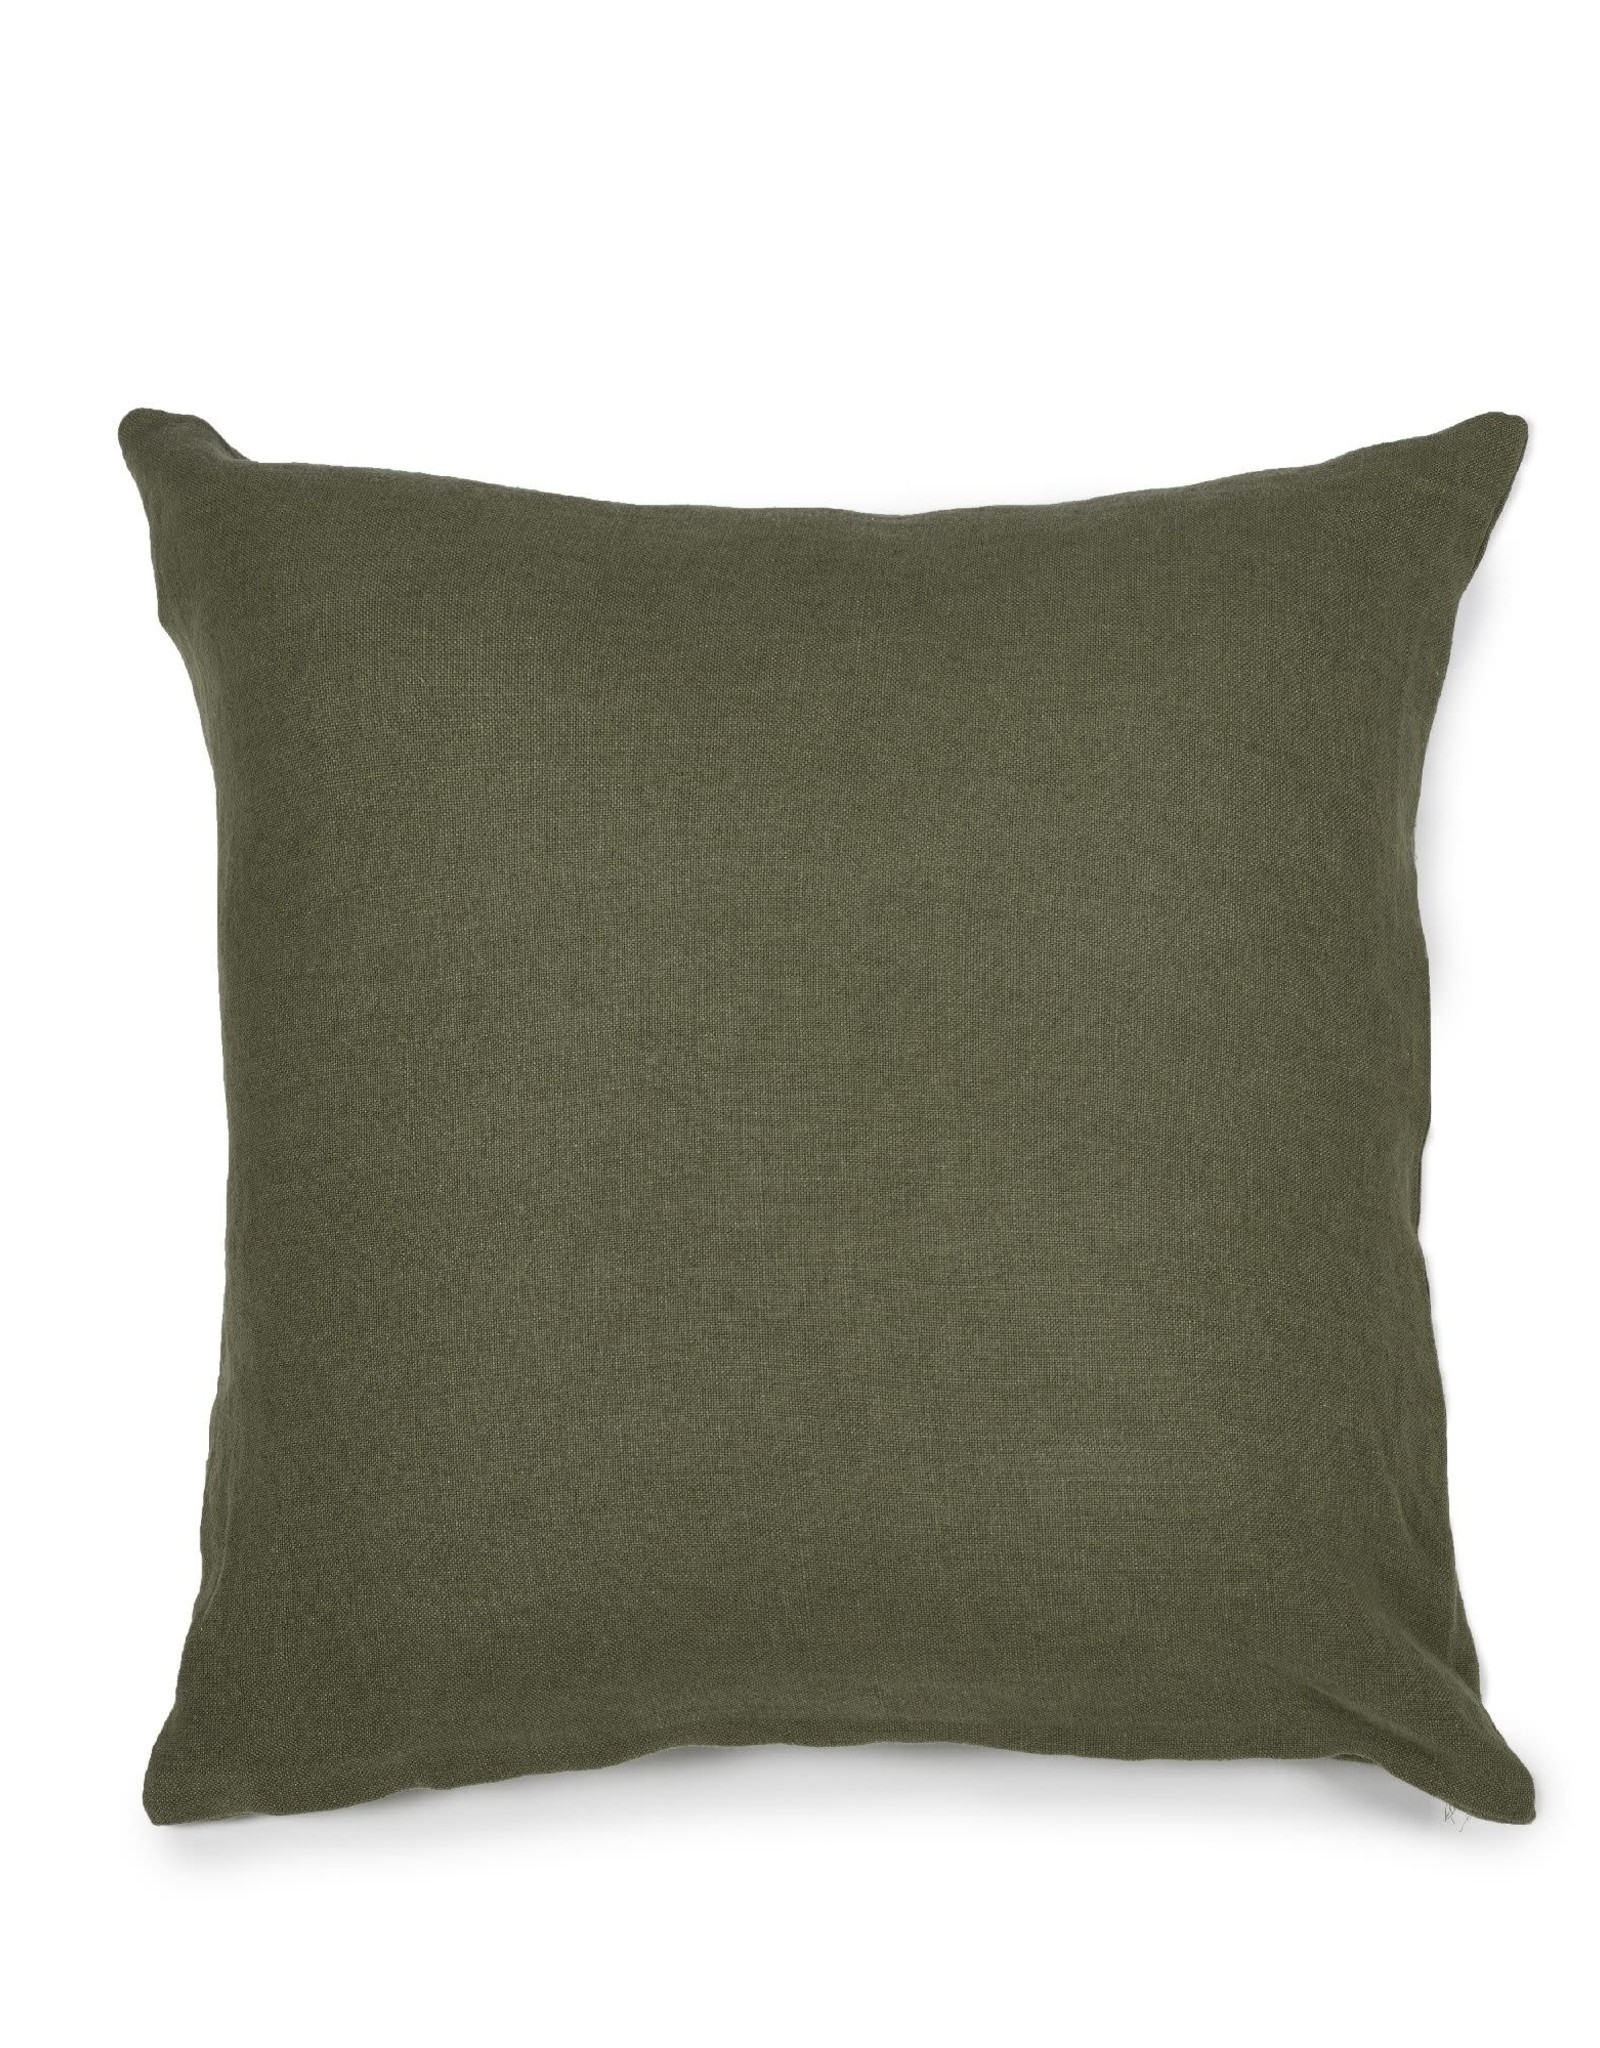 LIBECO LAGAE PILLOW HUDSON FOREST GREEN 25X25